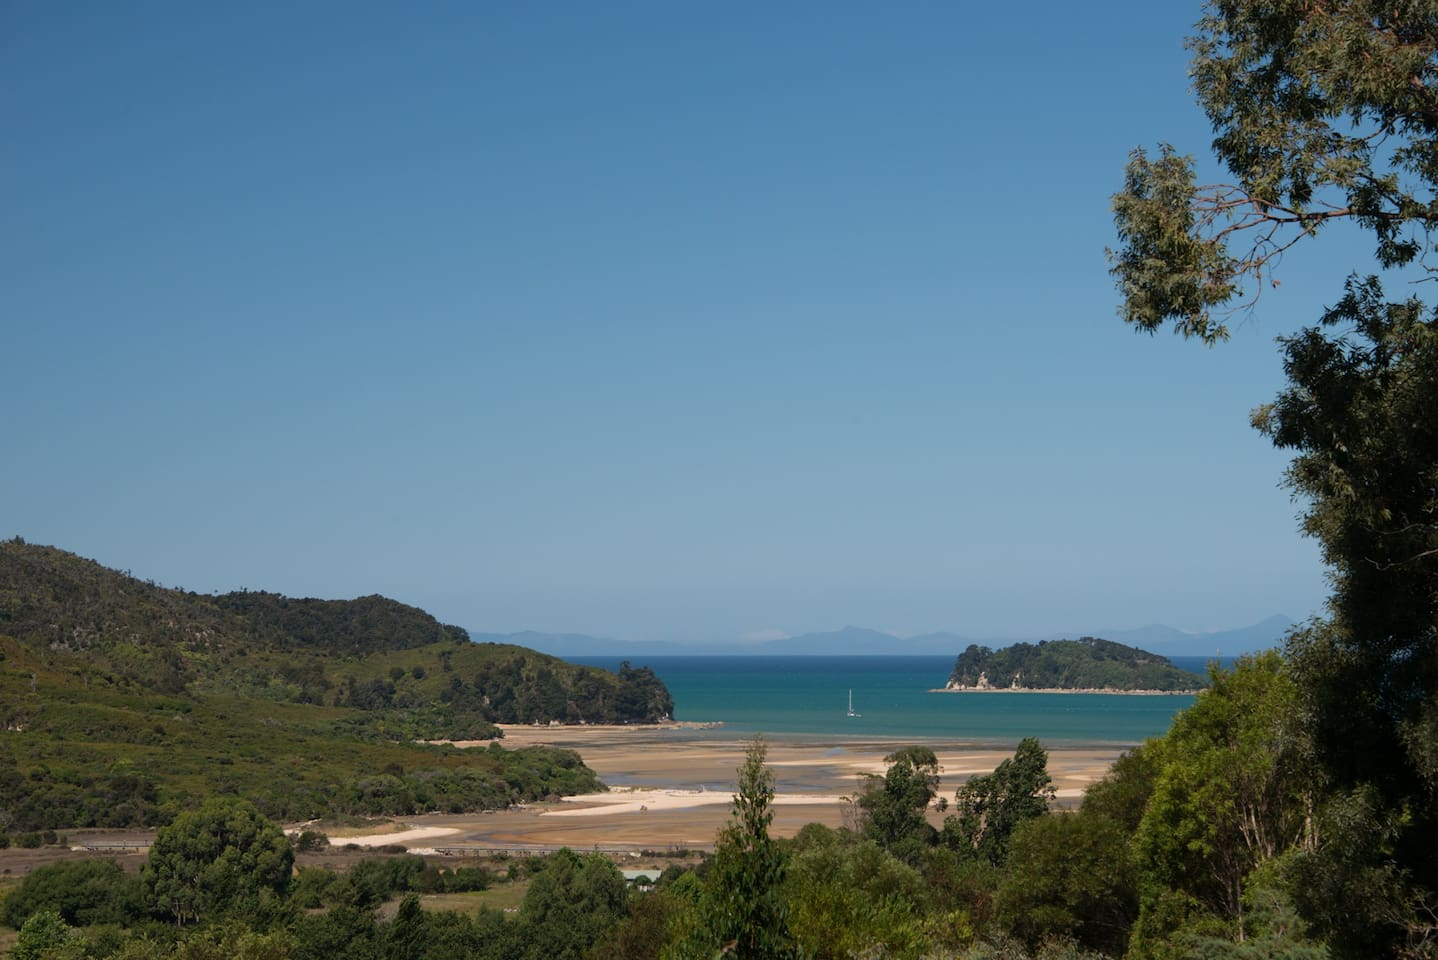 View from the loft, Abel Tasman National Park and Fisherman Island